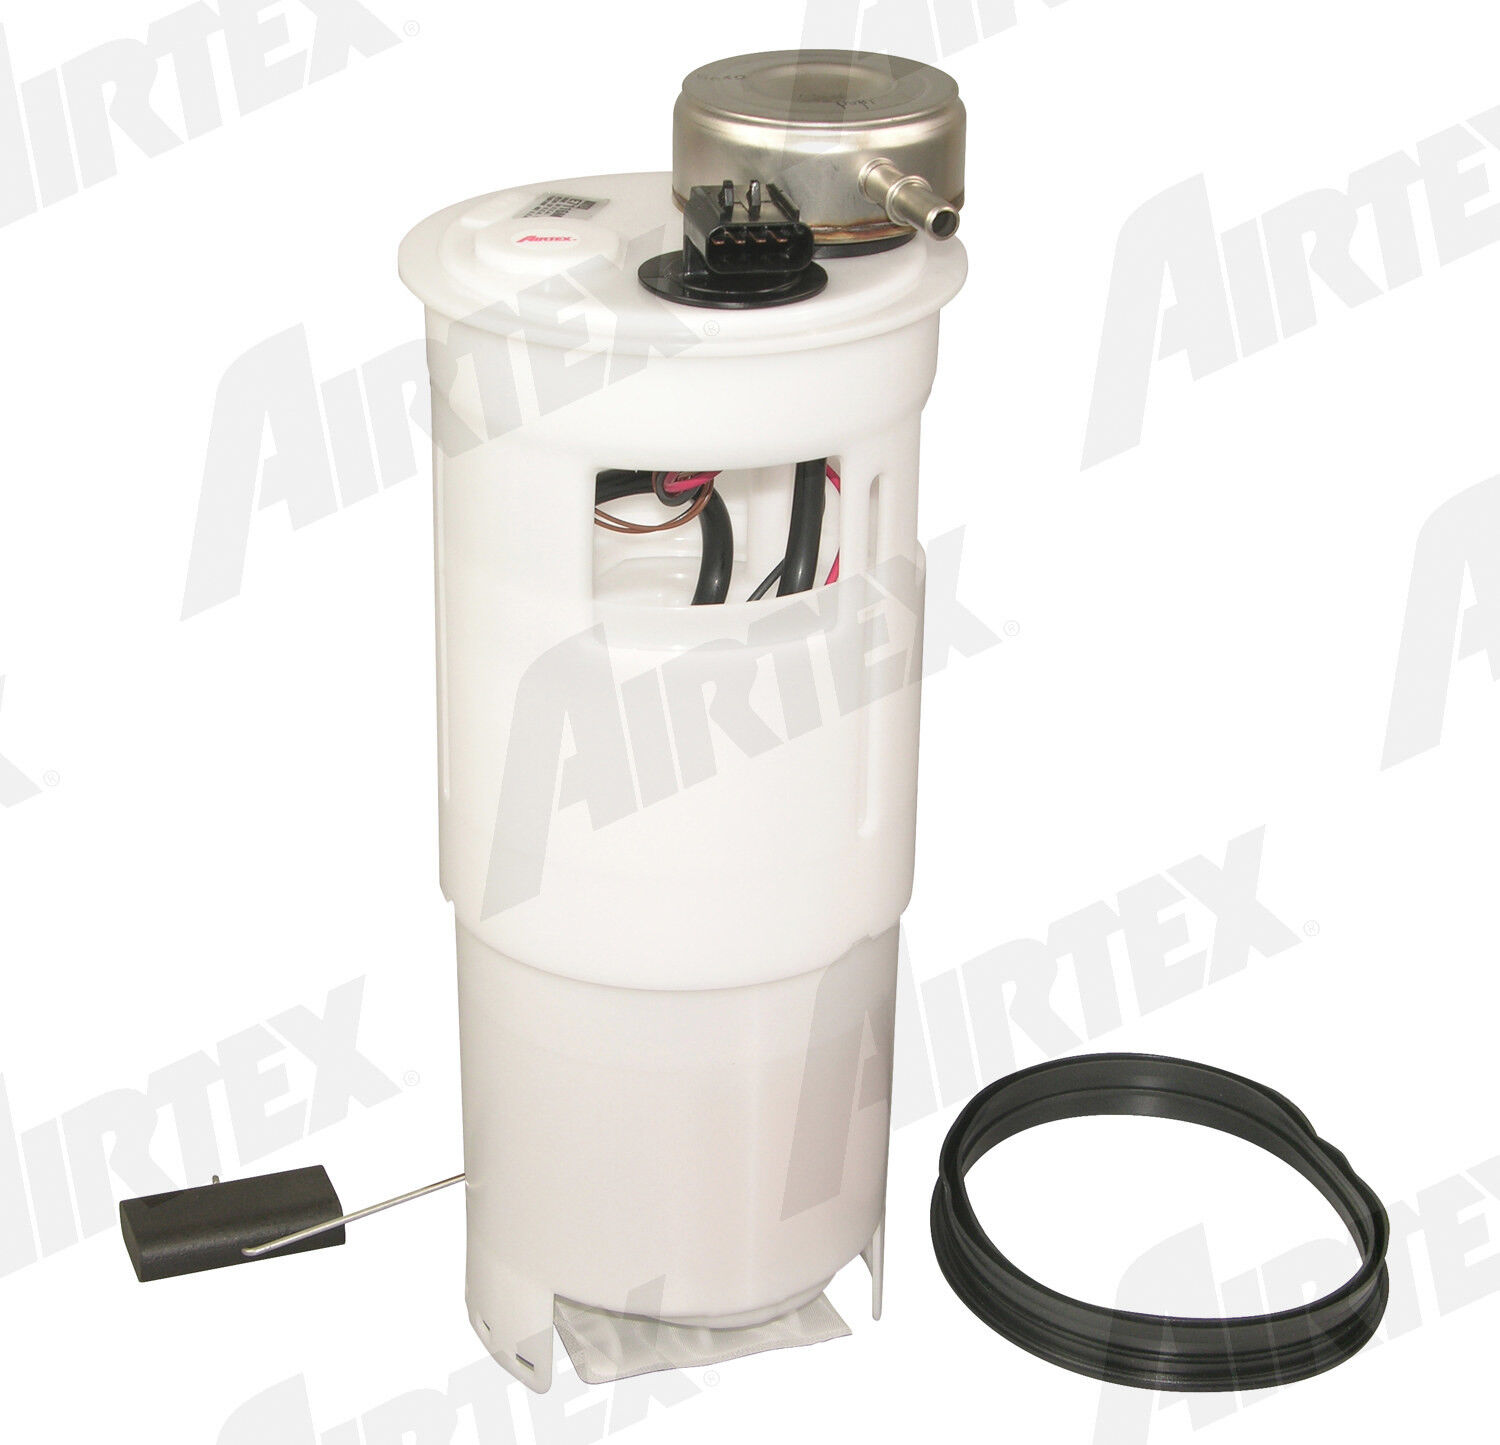 hight resolution of fuel pump module assembly airtex e7116m fits 97 03 dodge dakota 3 9l 03 dodge dakotum fuel filter